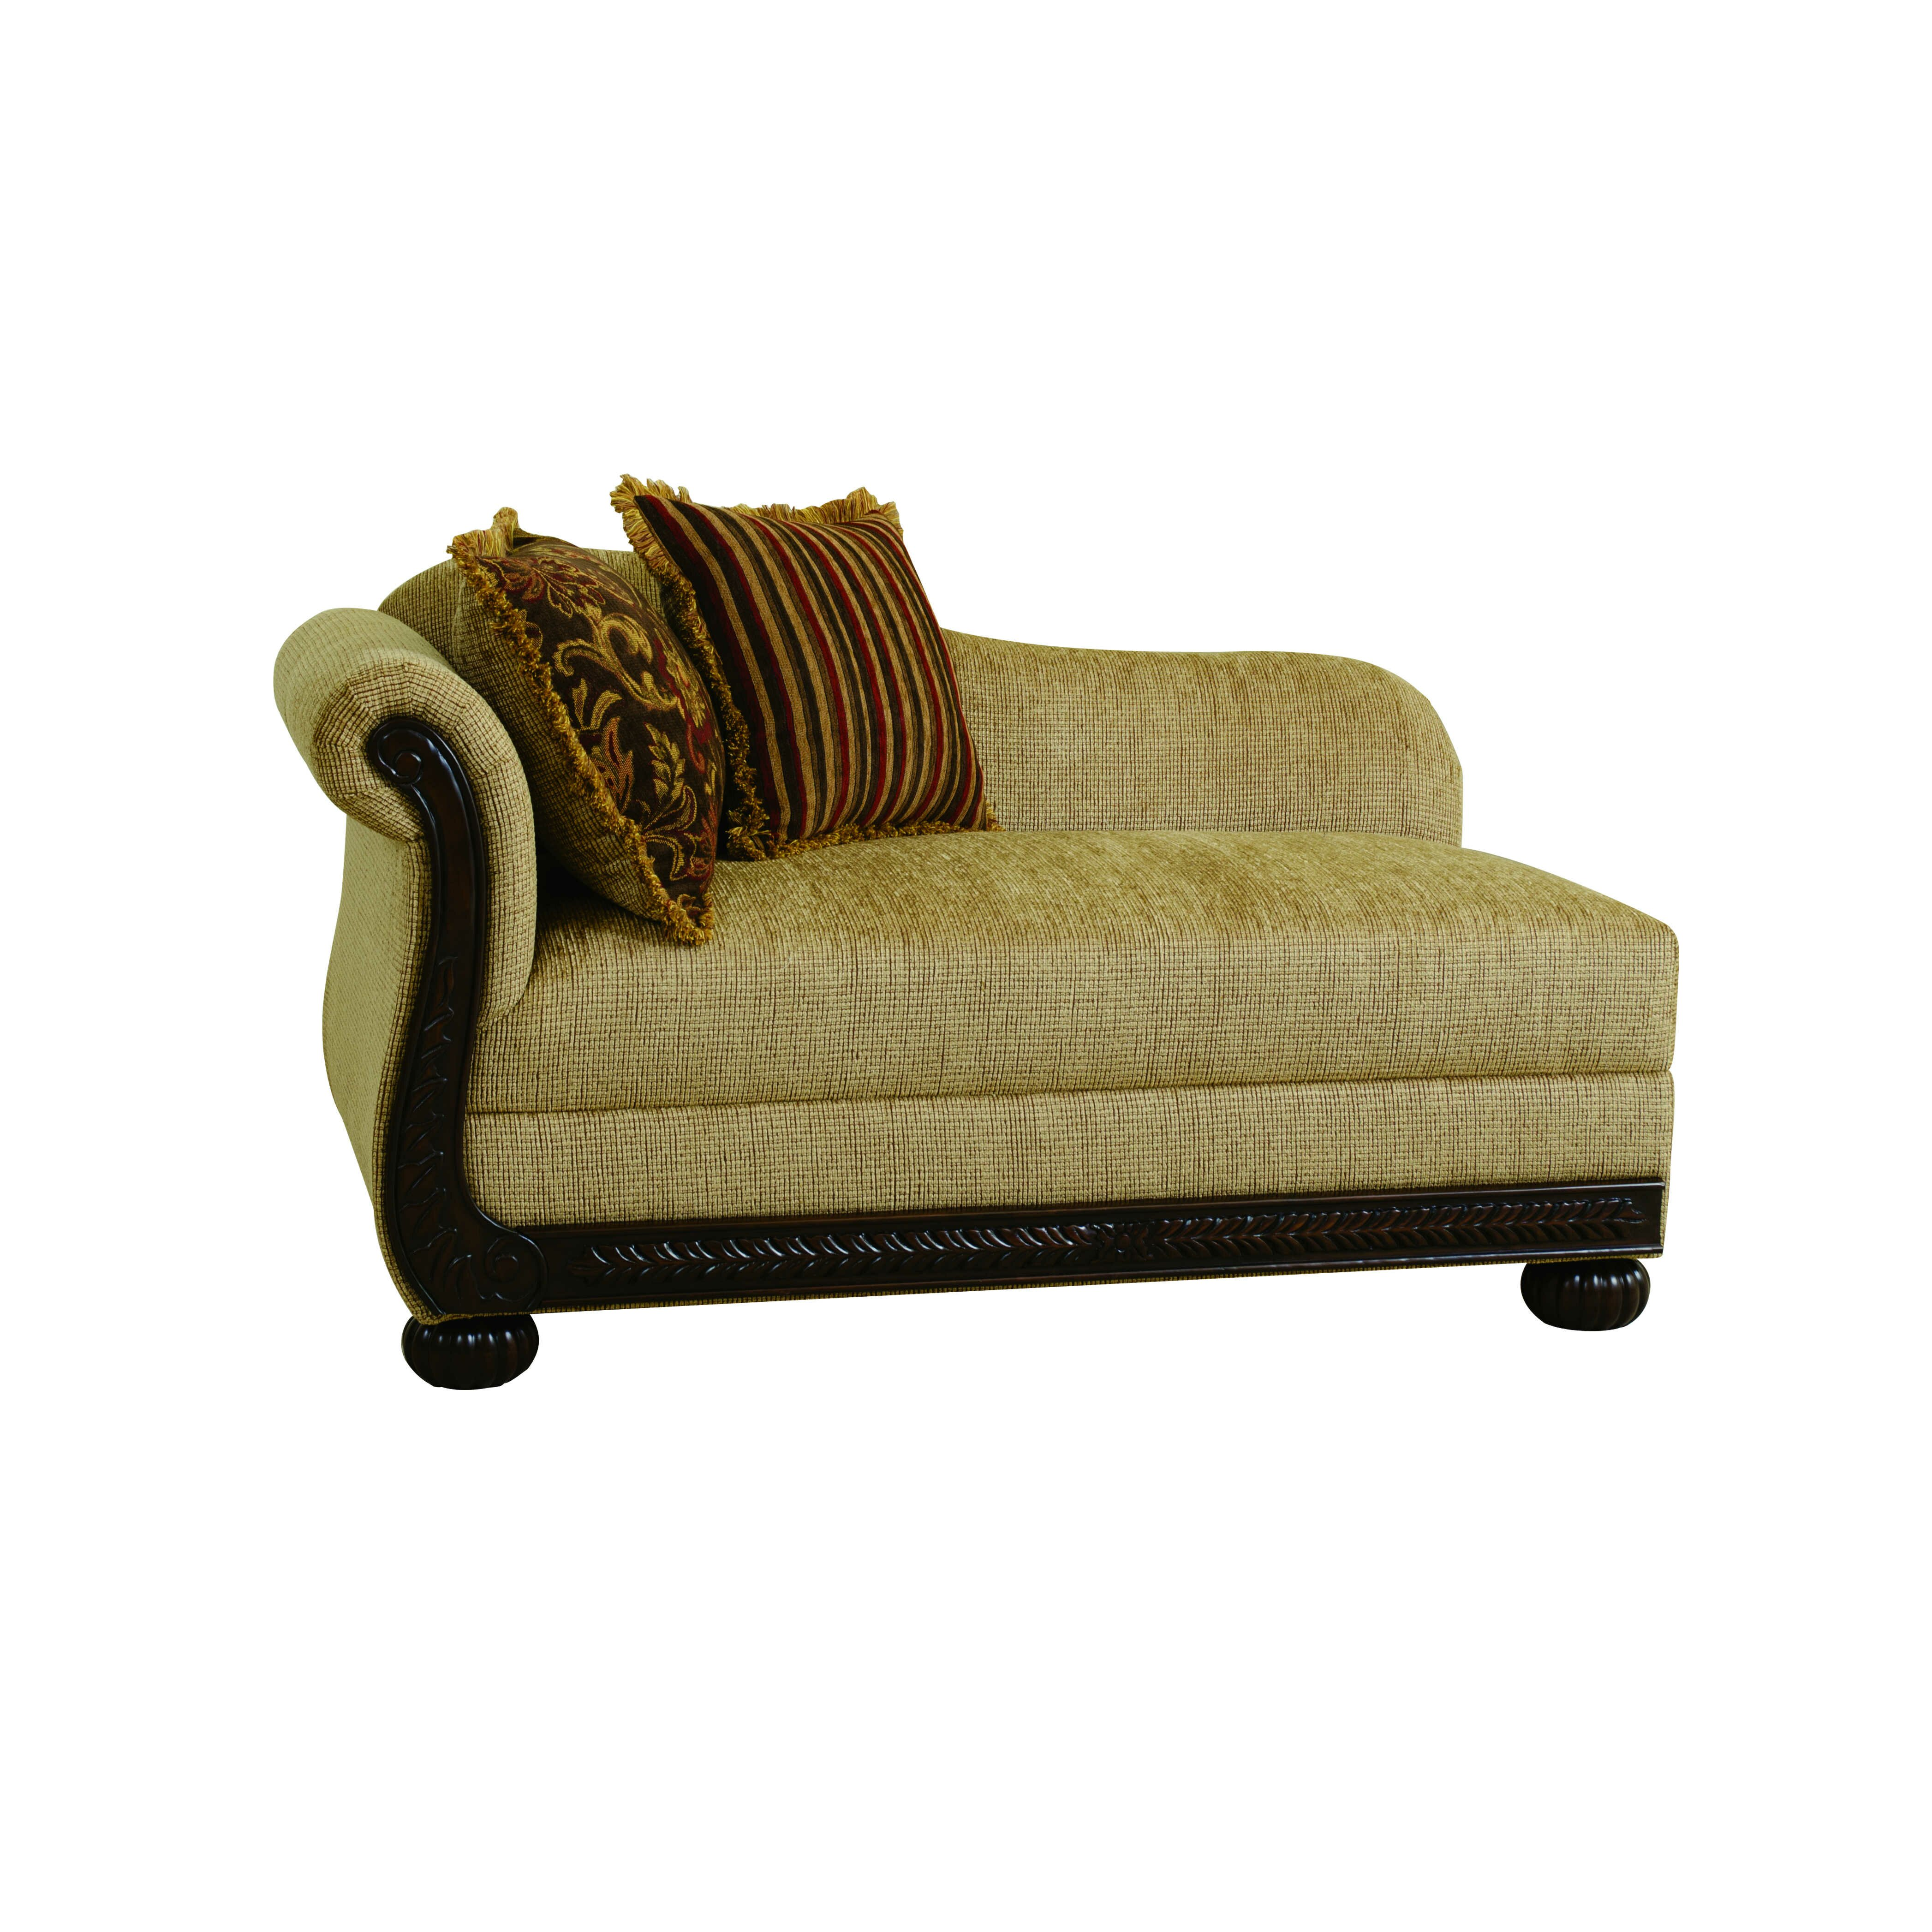 Serta Upholstery Living Room Collection Amp Reviews Wayfair